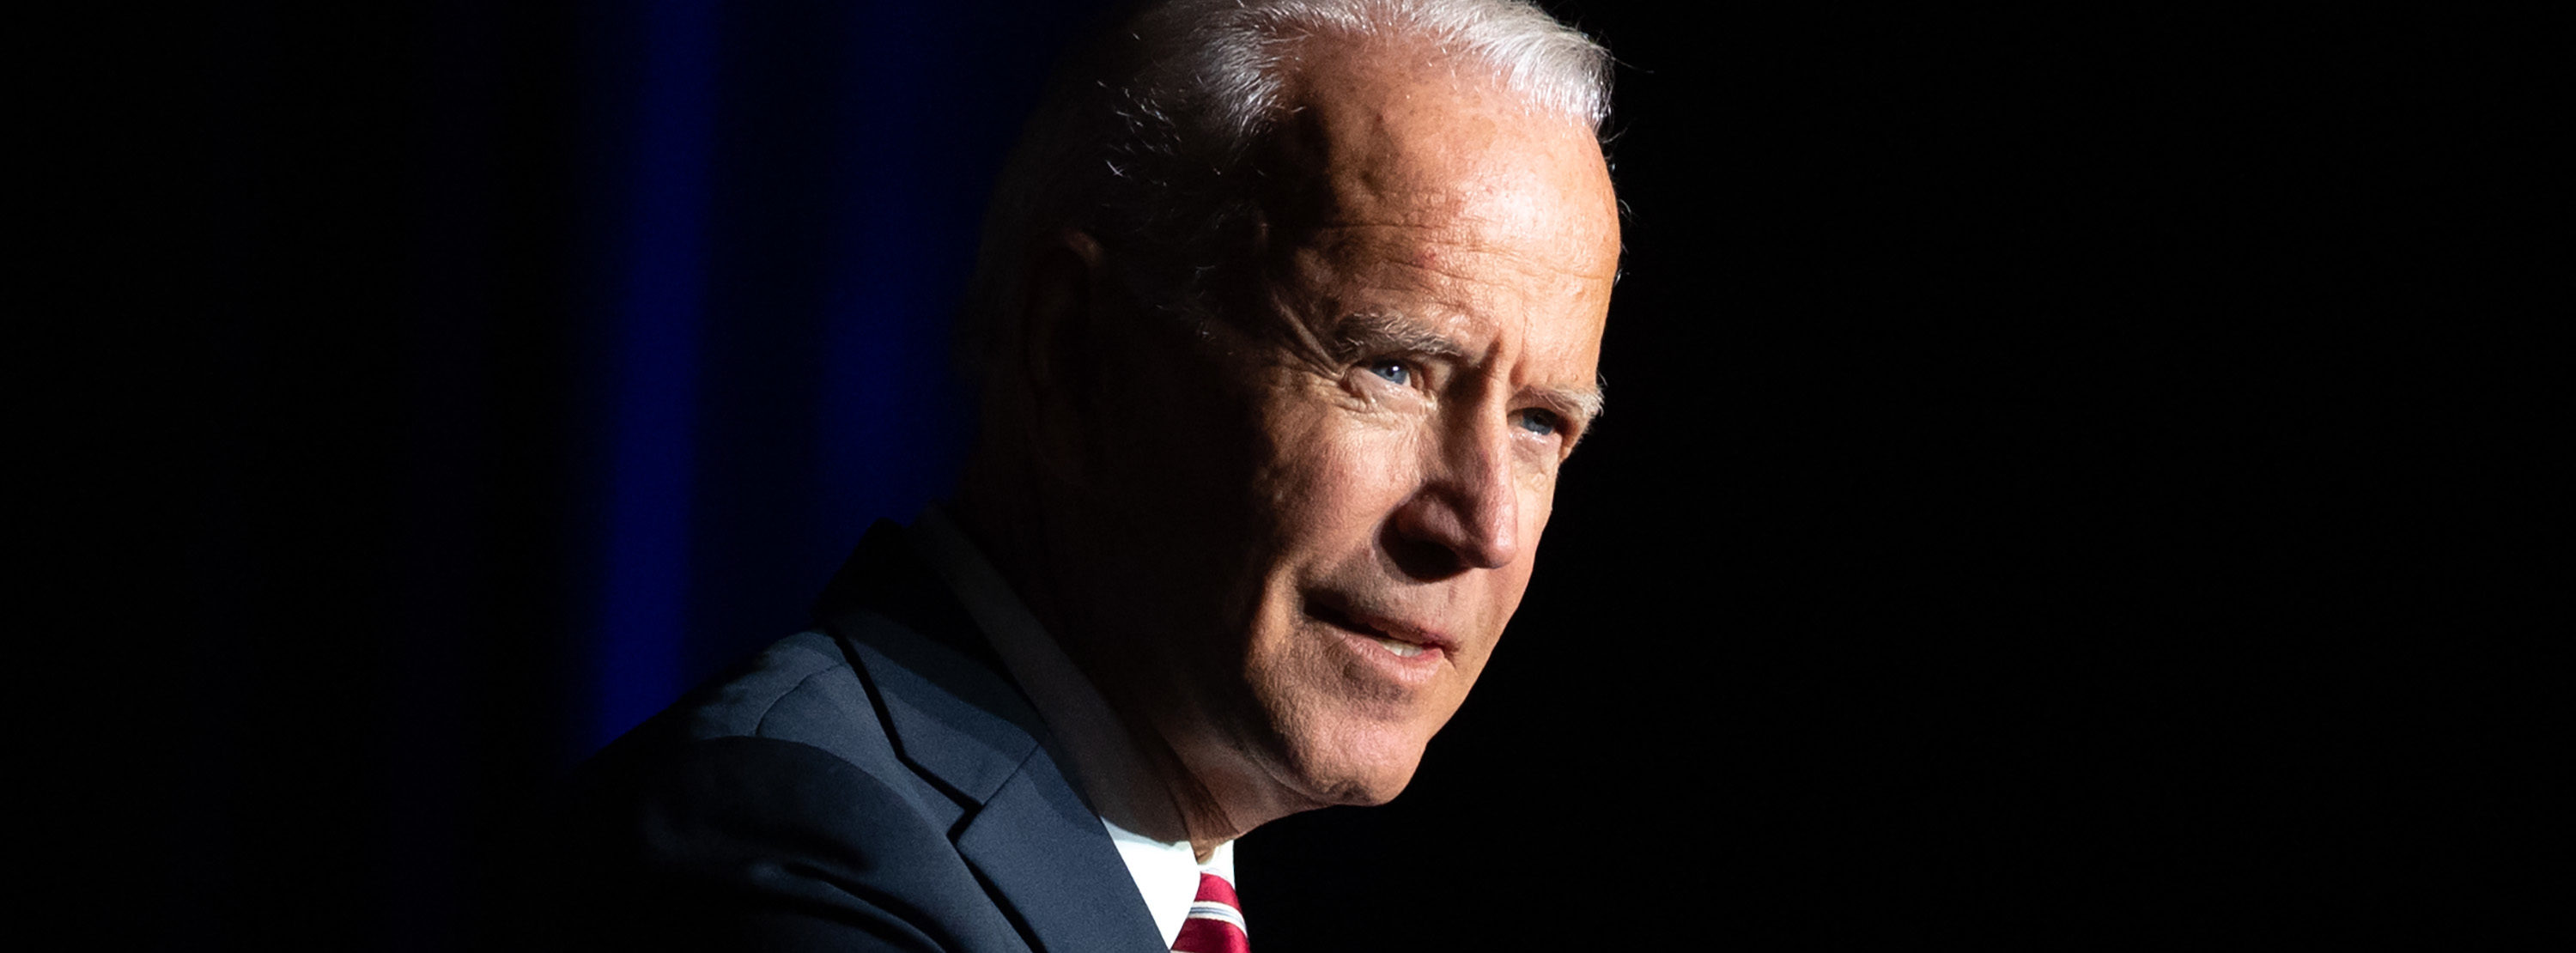 Biden Asks Secretary Of The Senate To Locate Any Tara Reade Complaint After Incorrectly Stating National Archives Would Have It